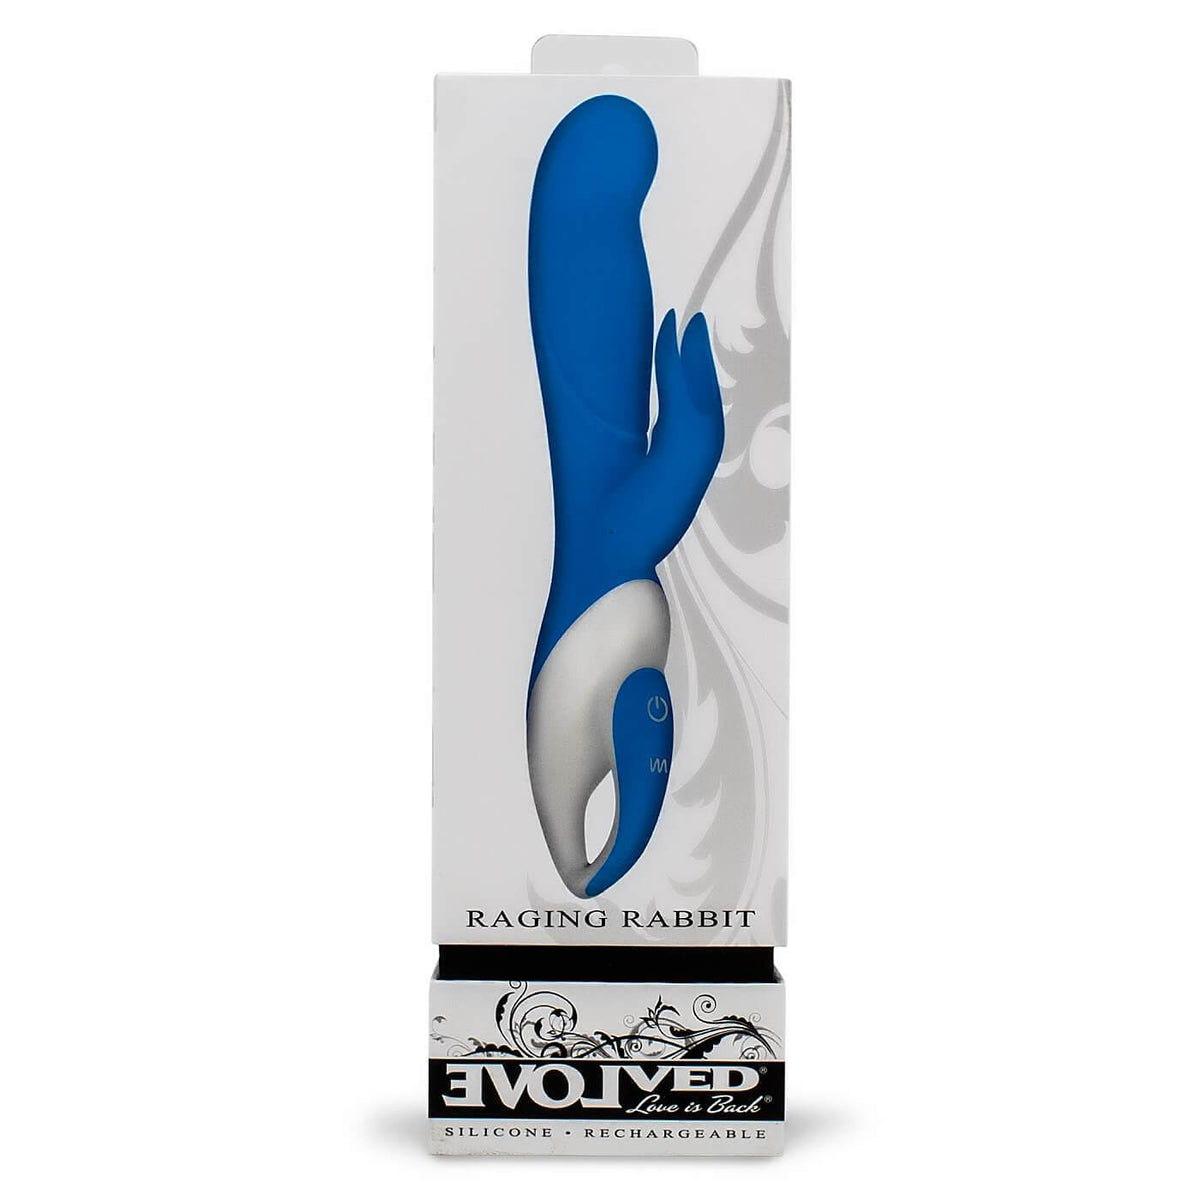 Evolved Novelties 7 Functions USB Rechargeable Raging Rabbit Vibrator